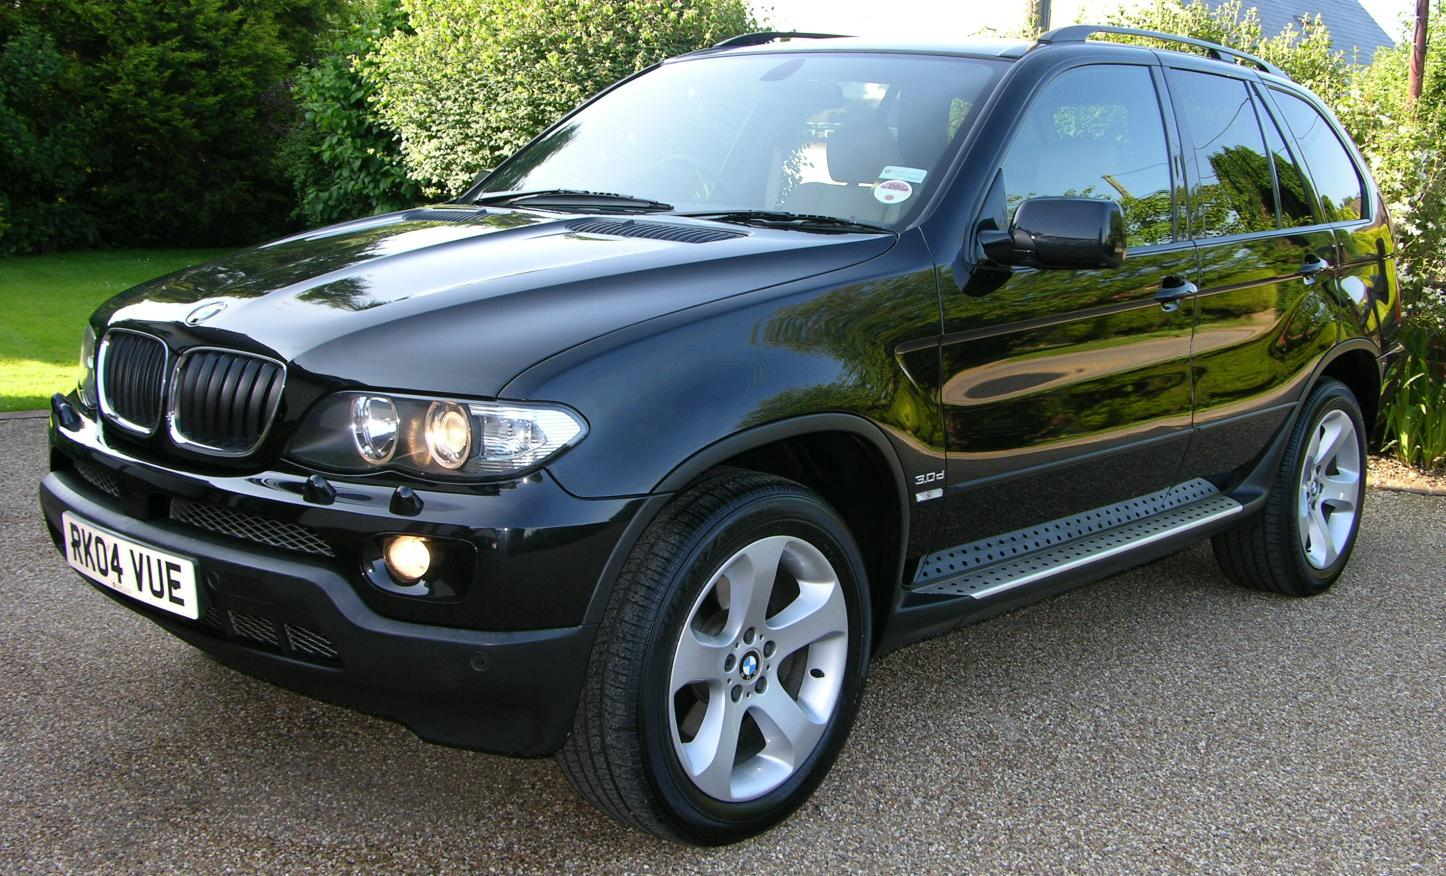 file bmw x5 sport flickr the car spy 23 jpg wikimedia commons. Black Bedroom Furniture Sets. Home Design Ideas